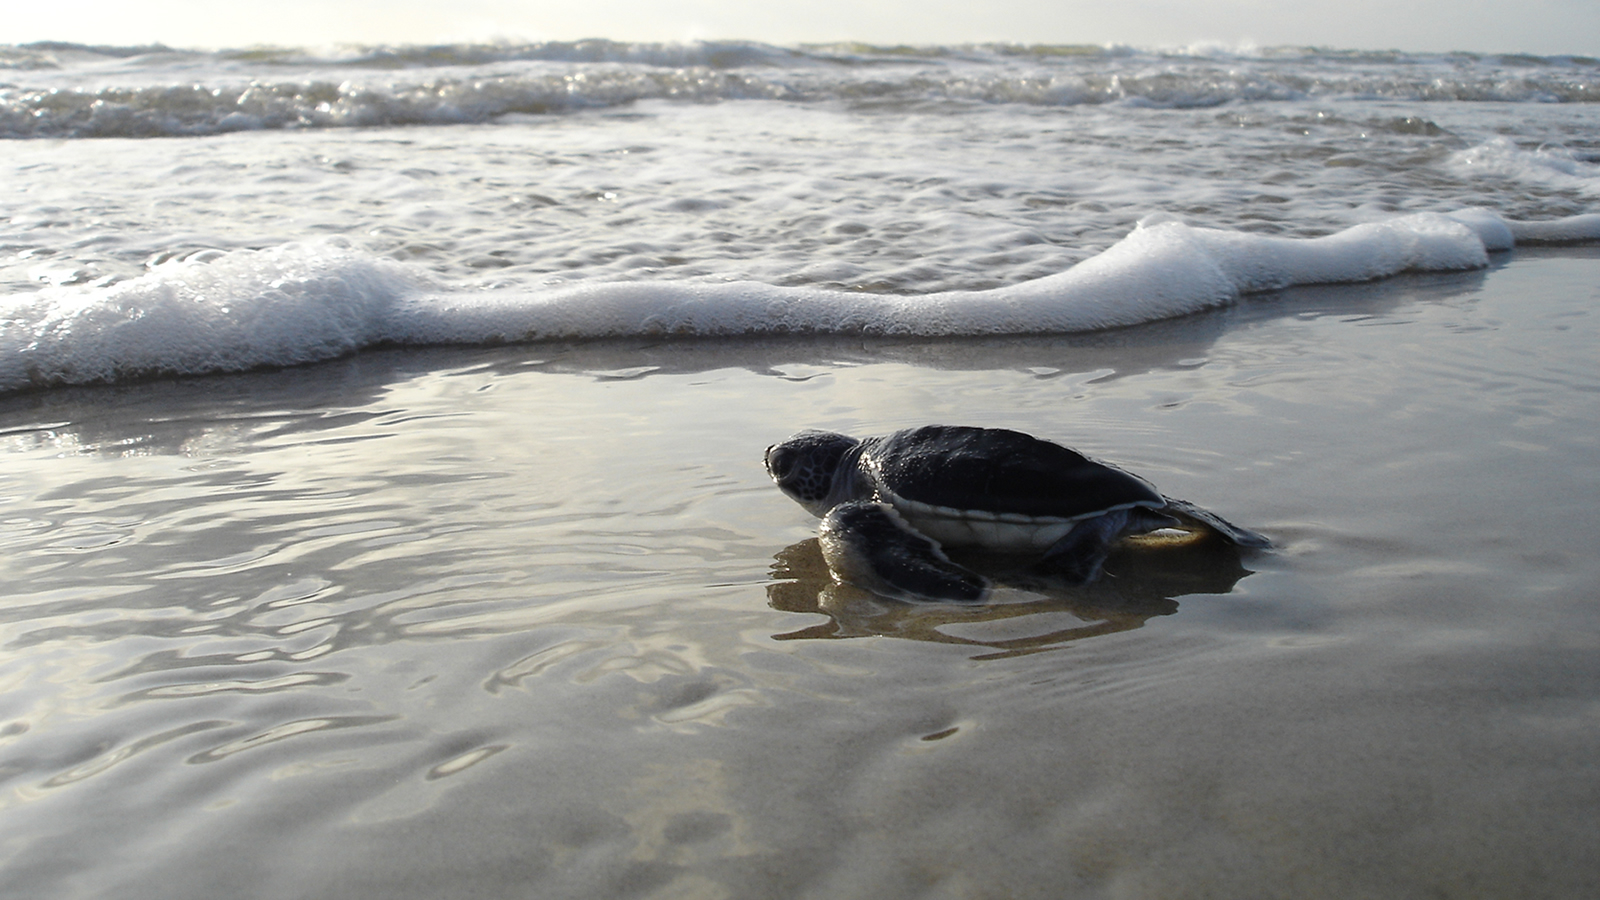 <h4>OUR OCEANS</h4><h5>We're working to keep beaches and coastal wildlife along 90% of America's coastline safe from new offshore oil and gas drilling.</h5><em>National Park Service</em>